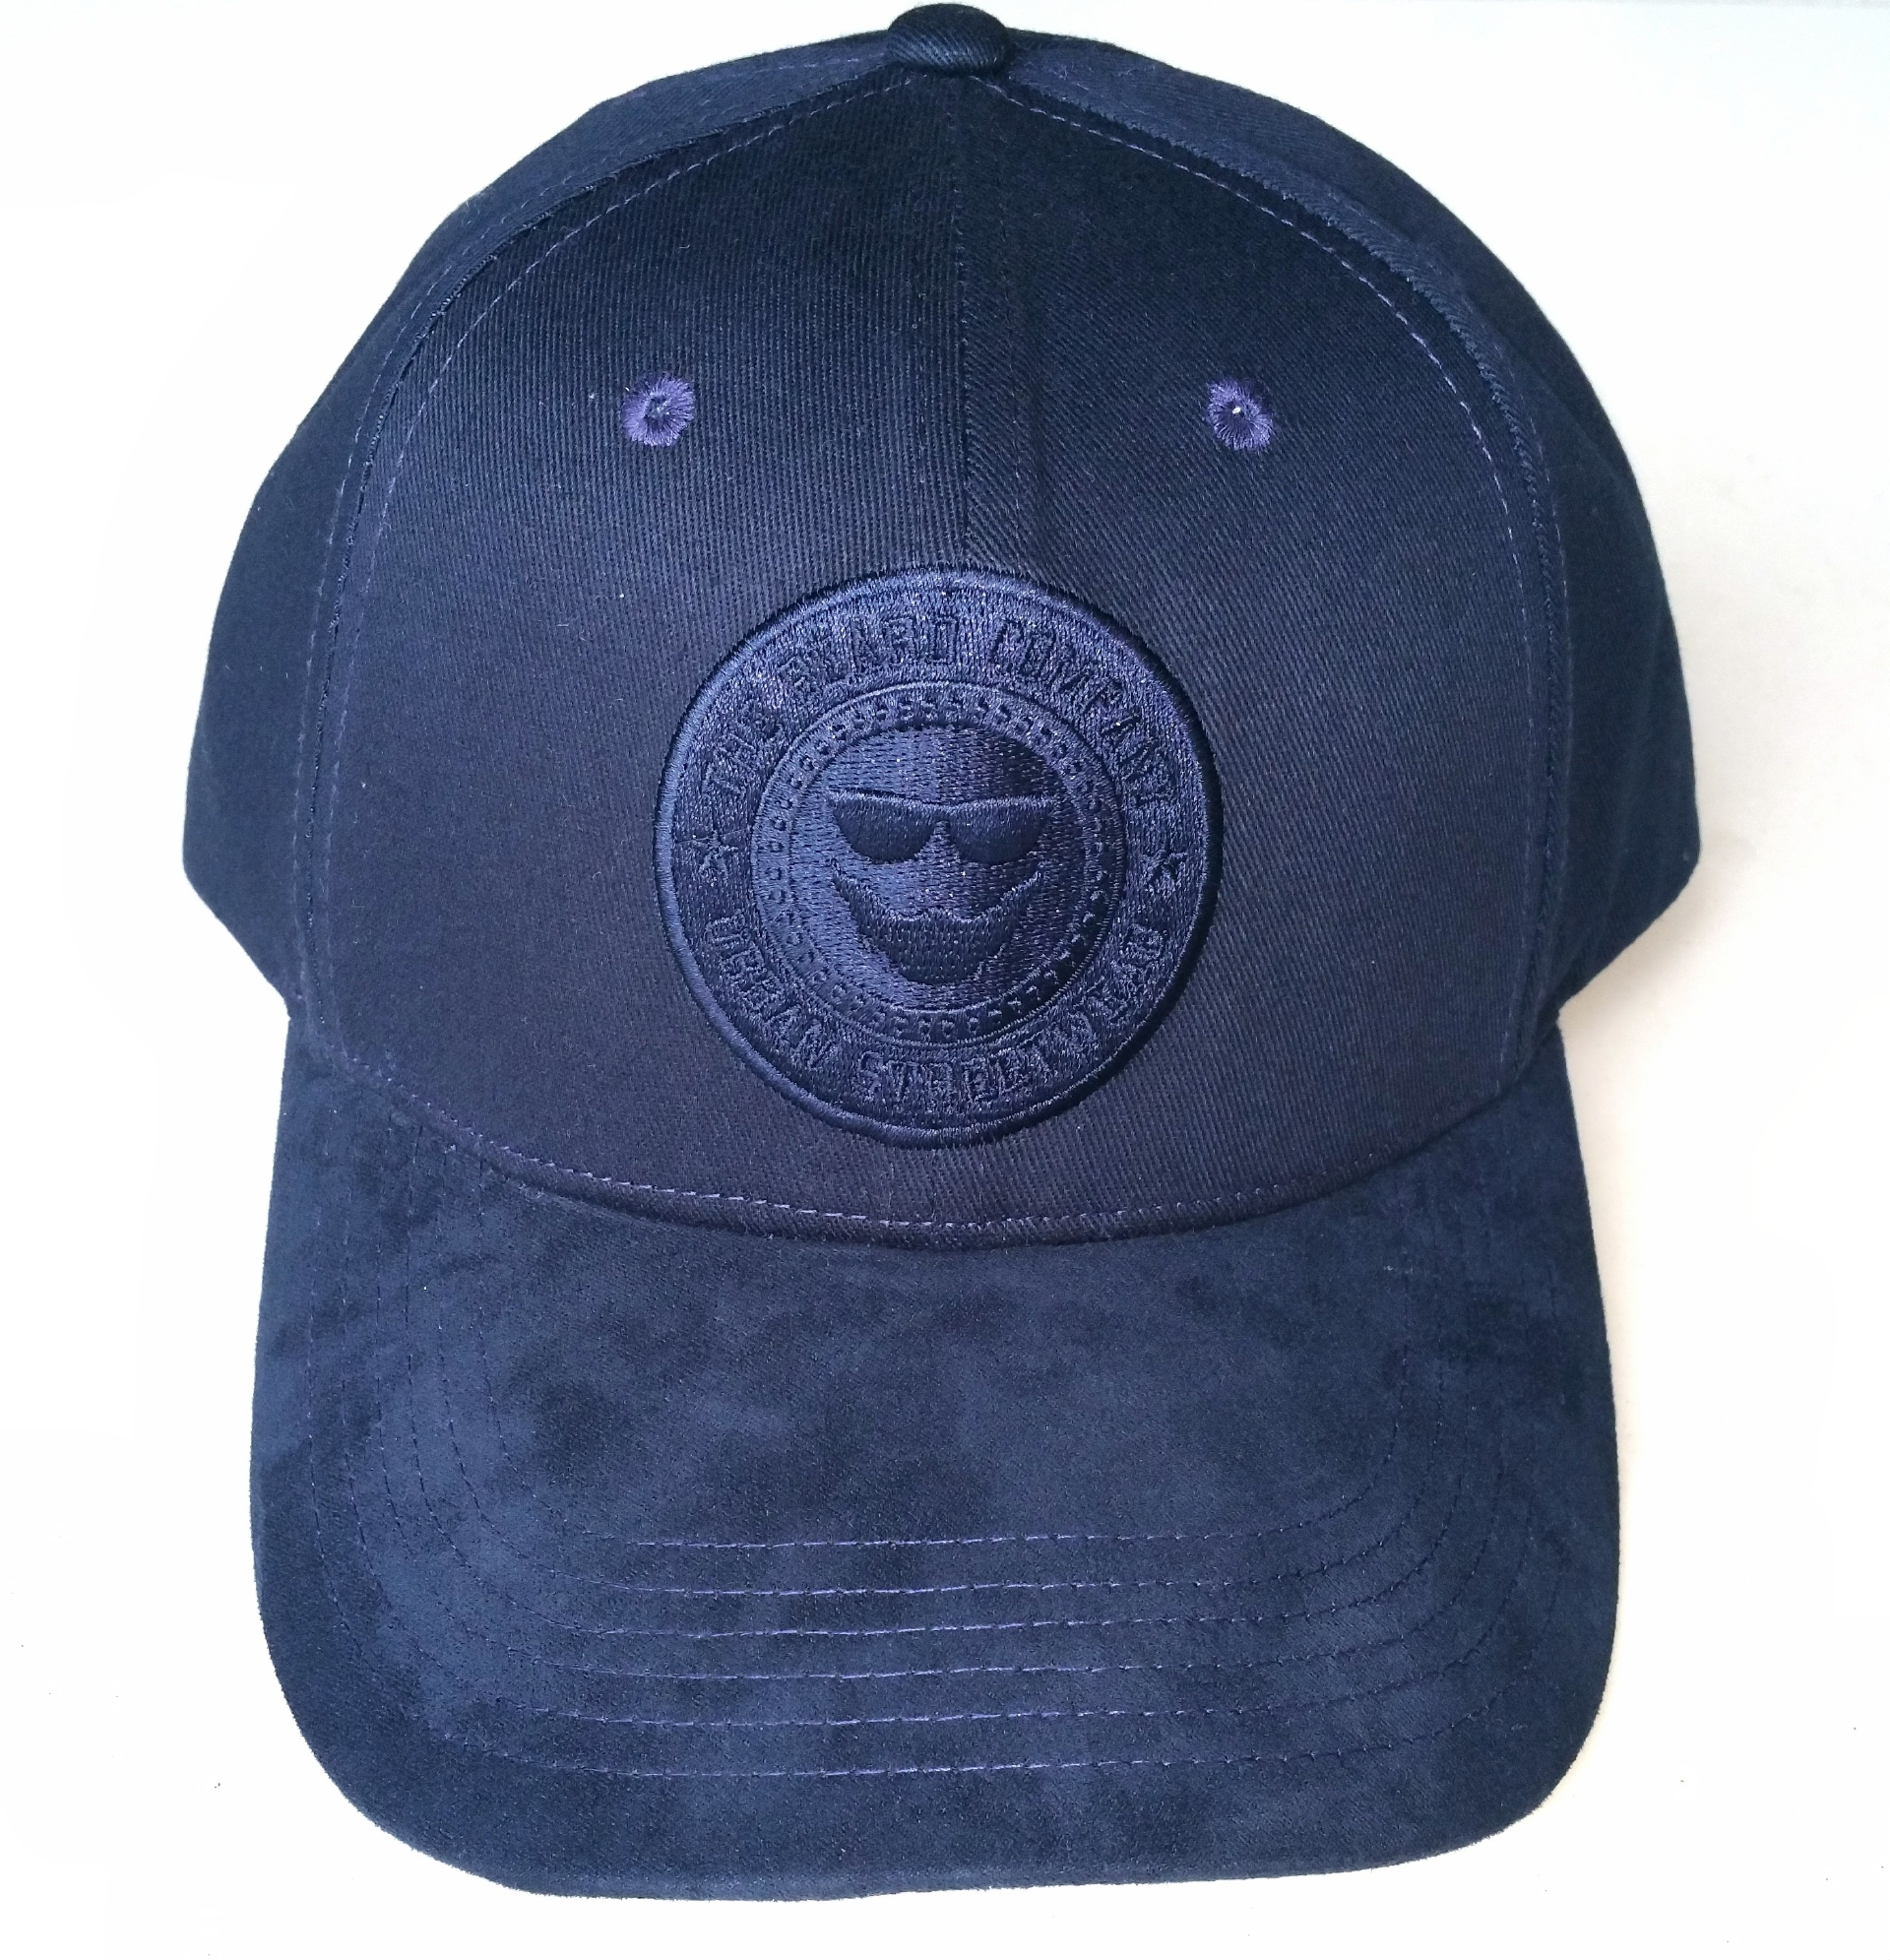 Navy blue cotton patch embroidery 6 panel baseball cap